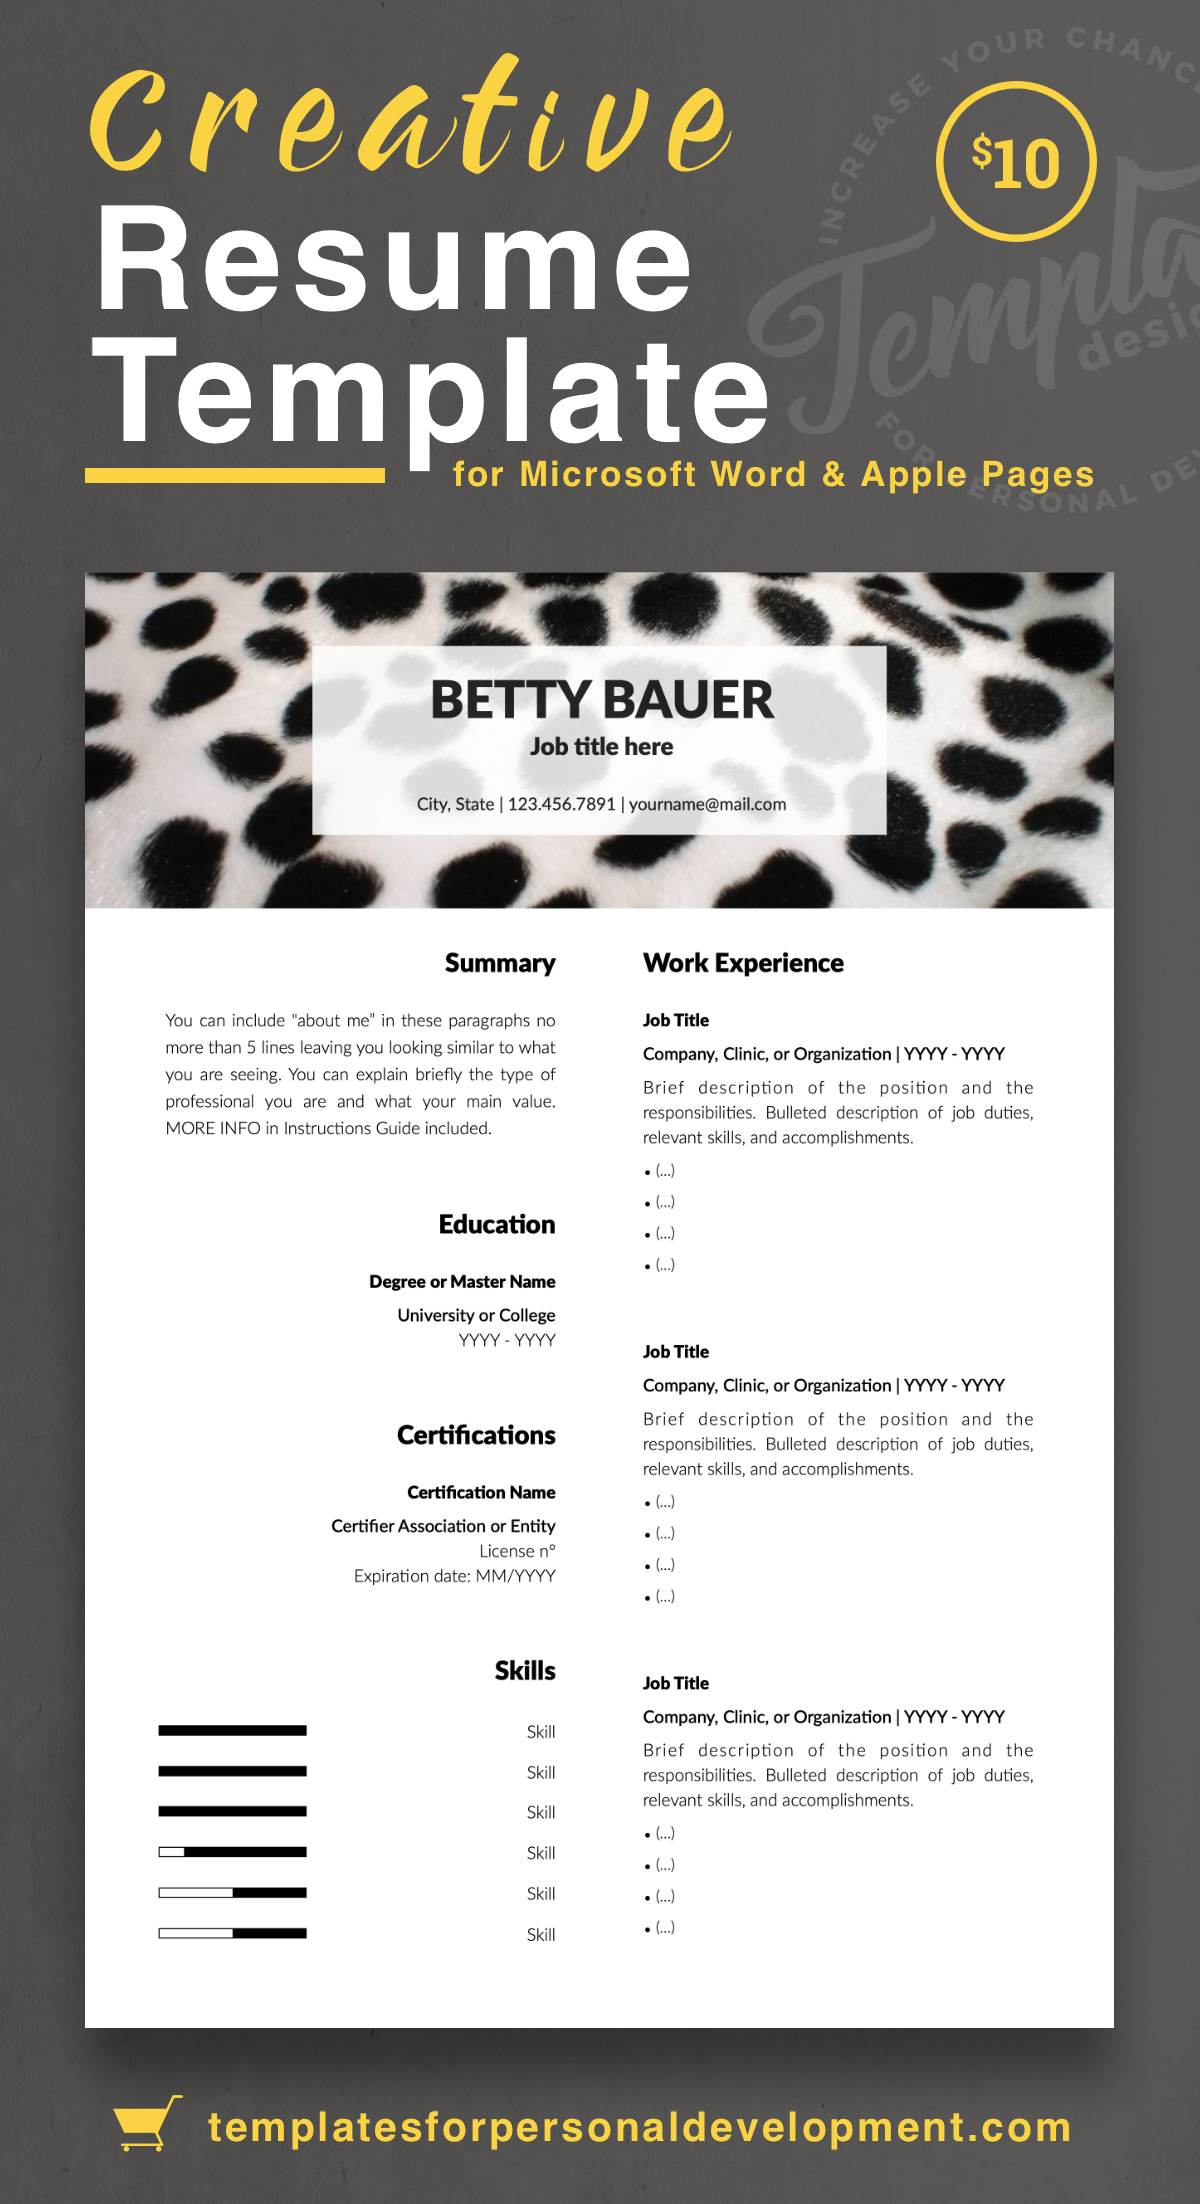 Betty Bauer Animal Care Resume Cv Template For Word Pages Us Letter A4 Files 1 2 3 Page Resume Version Cover Letter References Cover Letter Resume Templates Reference Letter Template Resume